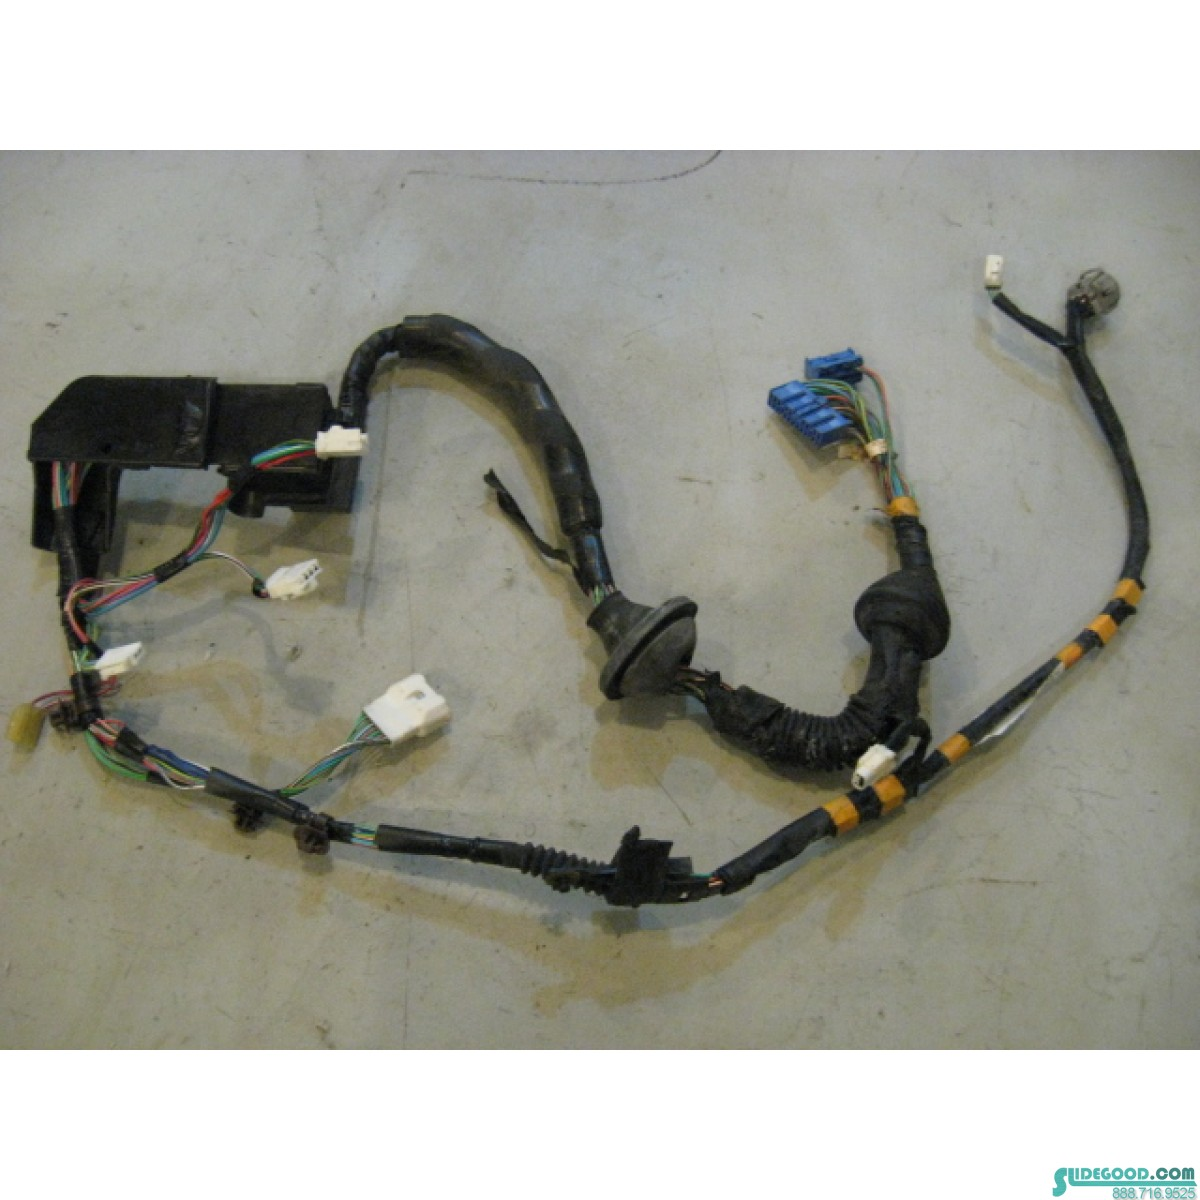 10773_01 lexus sc400 rh passenger door wiring harness 82151 24231 r10773 1992 Lexus SC400 at gsmx.co